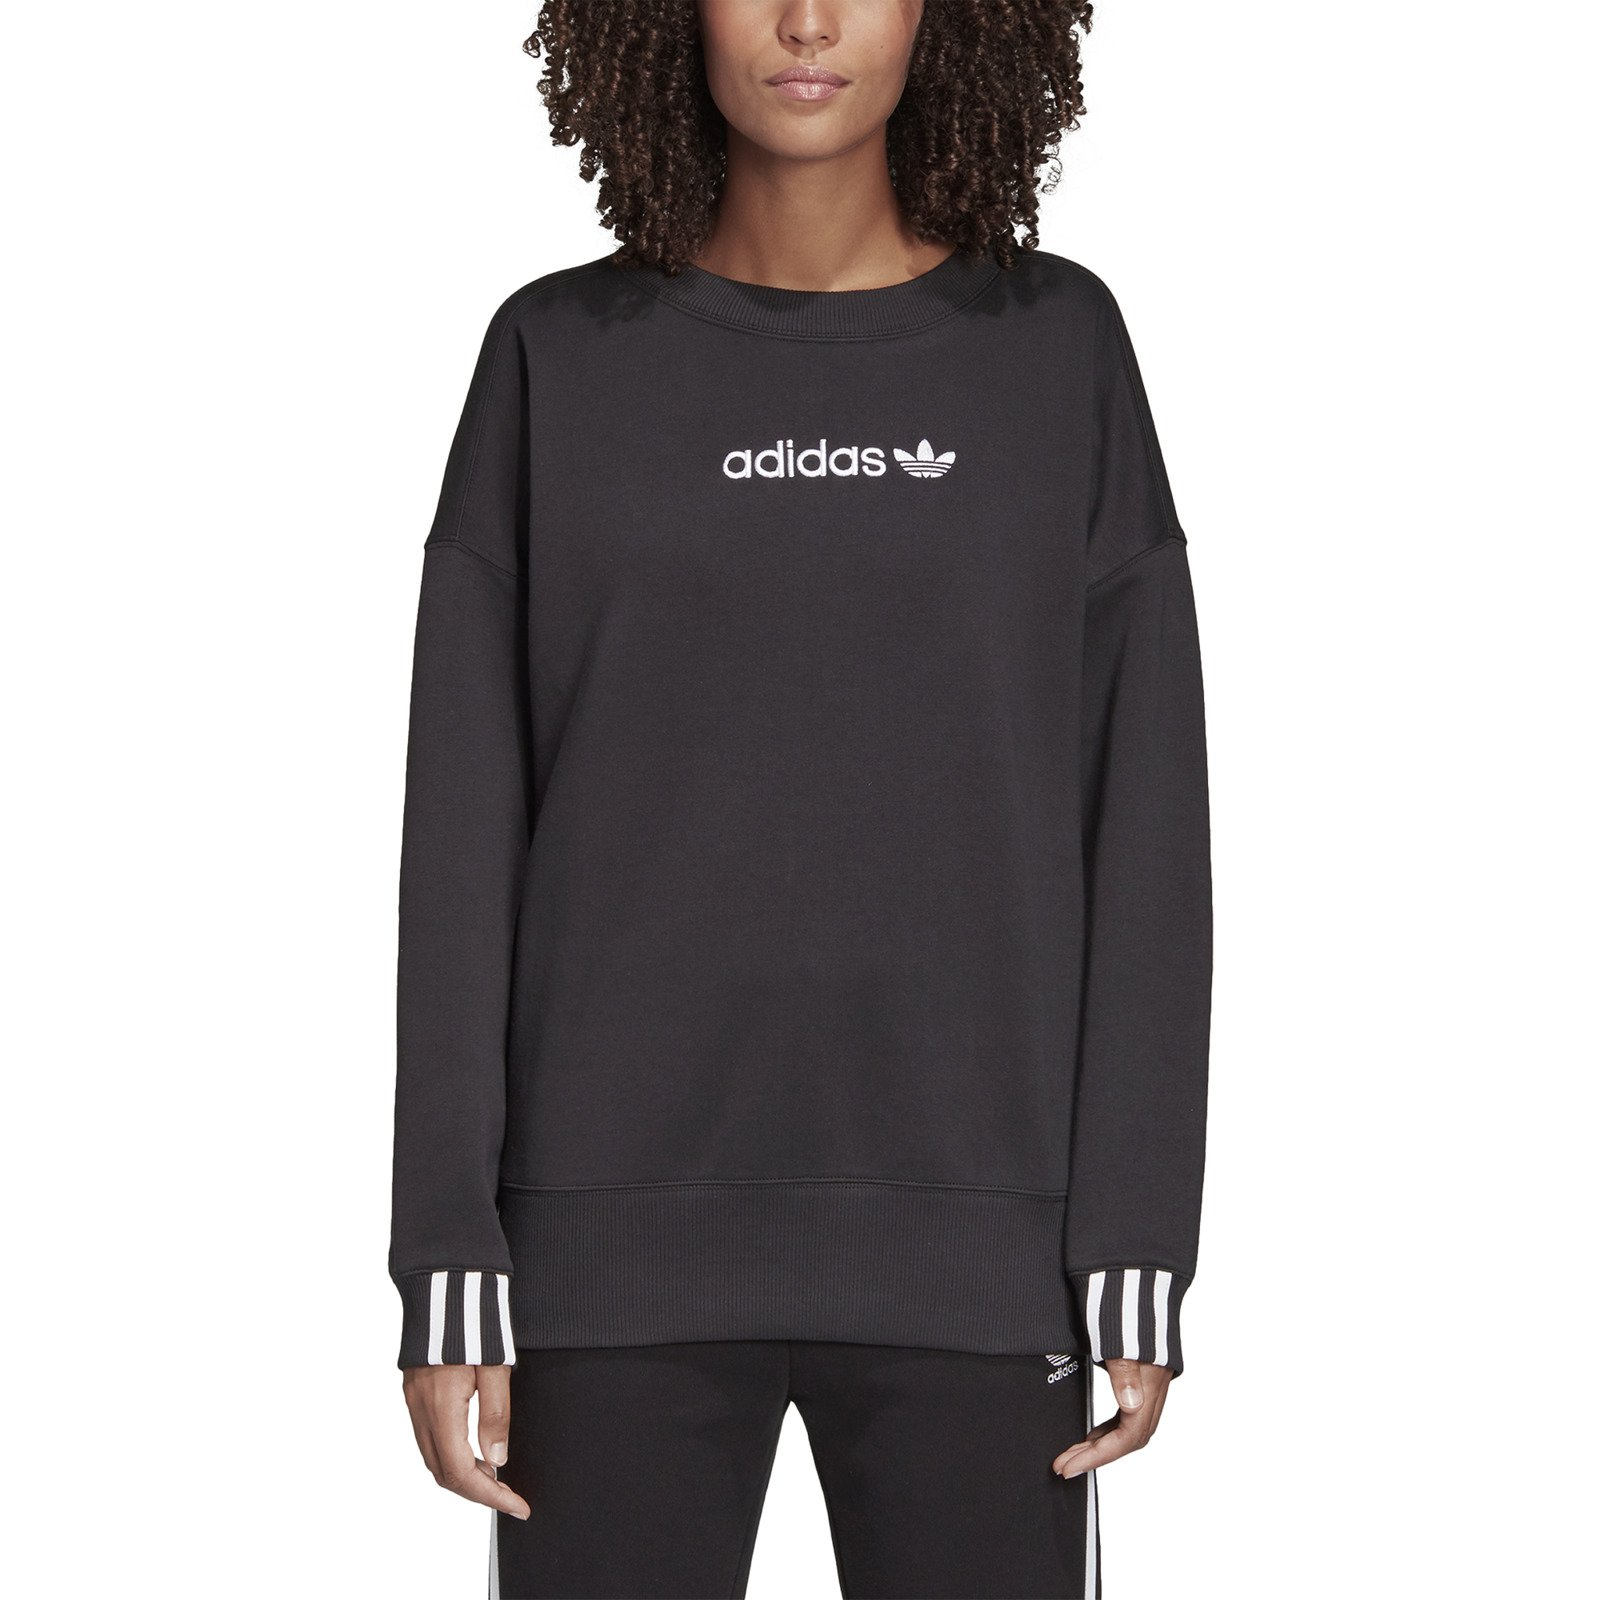 9ecfecac2fef Sweat femme adidas Originals Coeeze DU7193 · Sweat femme adidas Originals  Coeeze DU7193 ...